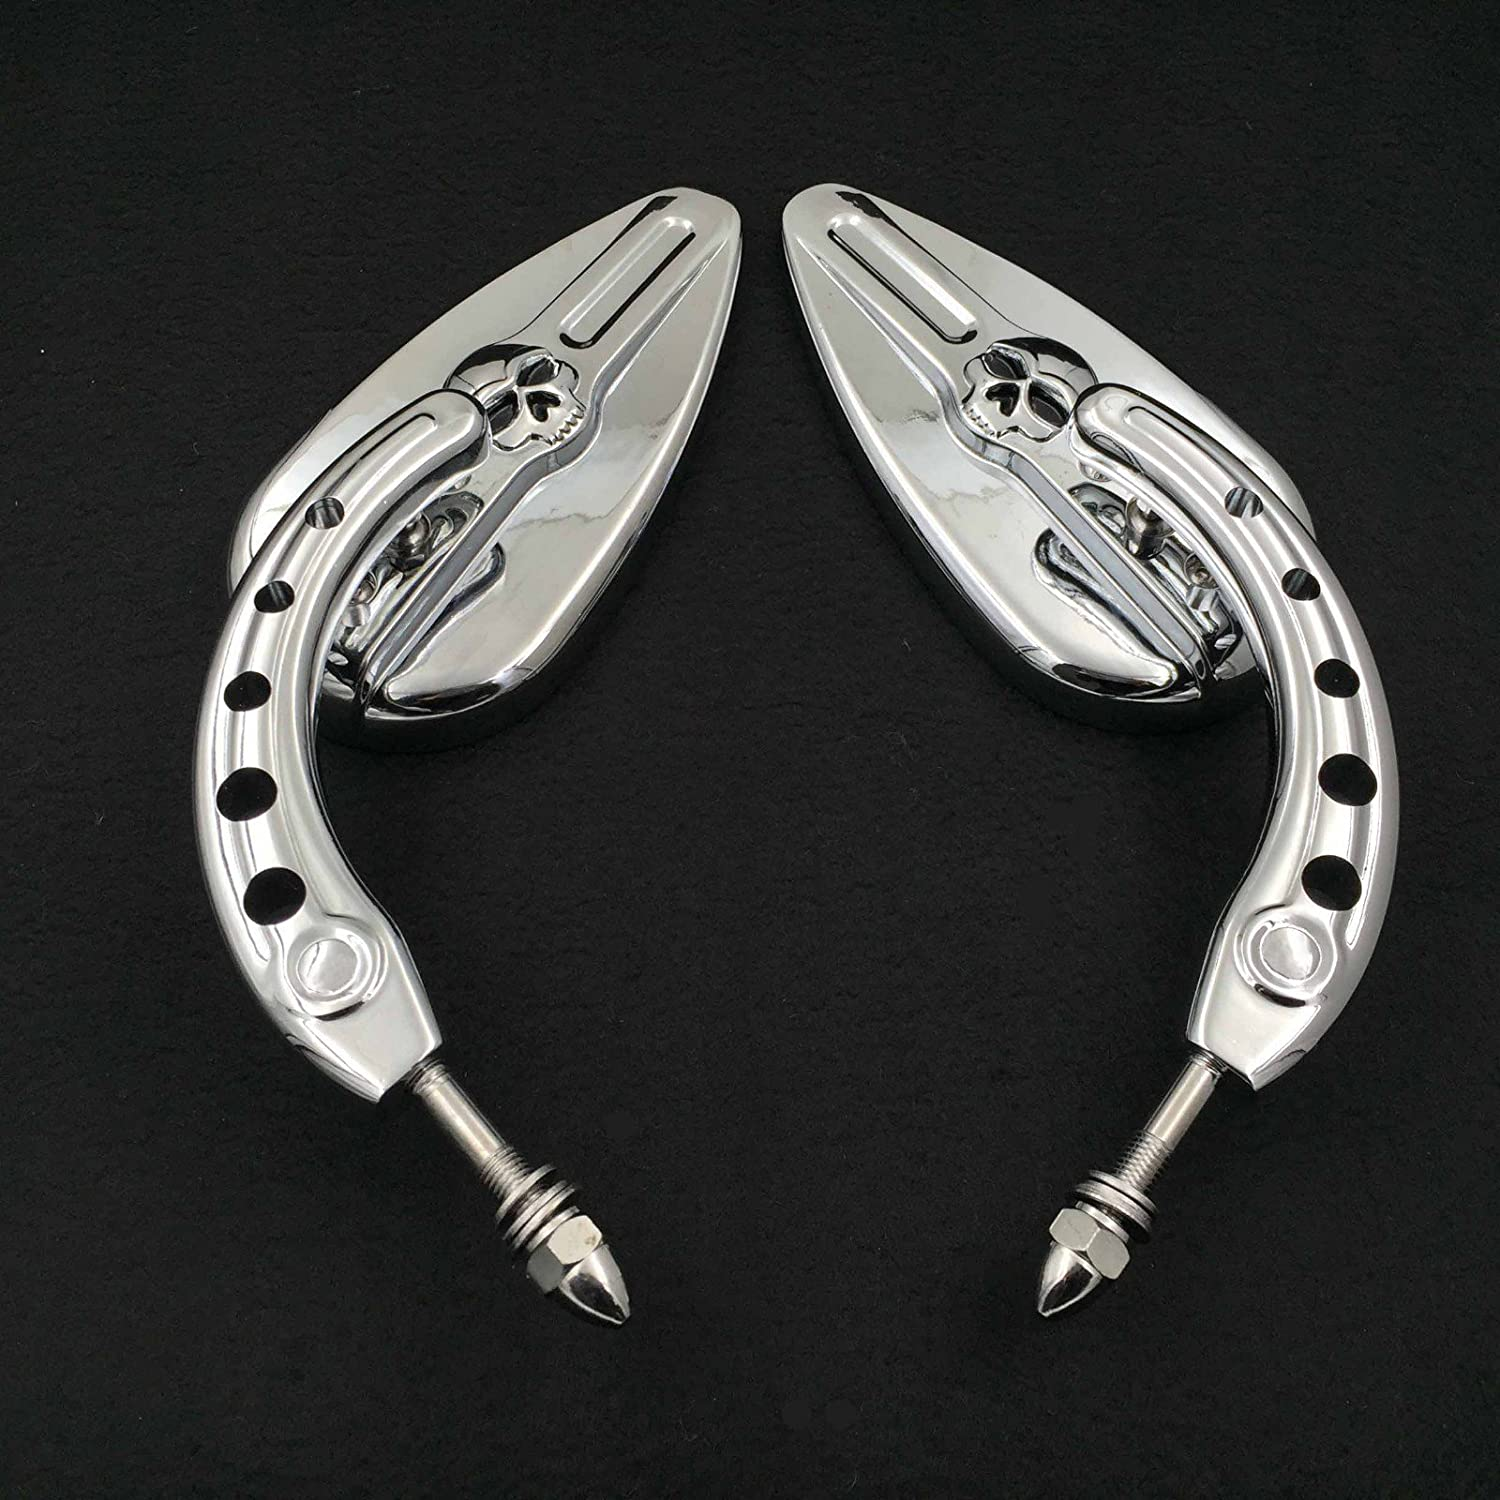 HTT Motorcycle Chrome Skull Side Mirrors For 1984 and up Harley Davidson Dyna Street Bob Low Rider Fat Bob Wide Glide Switchback CVO Street Glide Trike Freewheeler Tri Glide Ultra